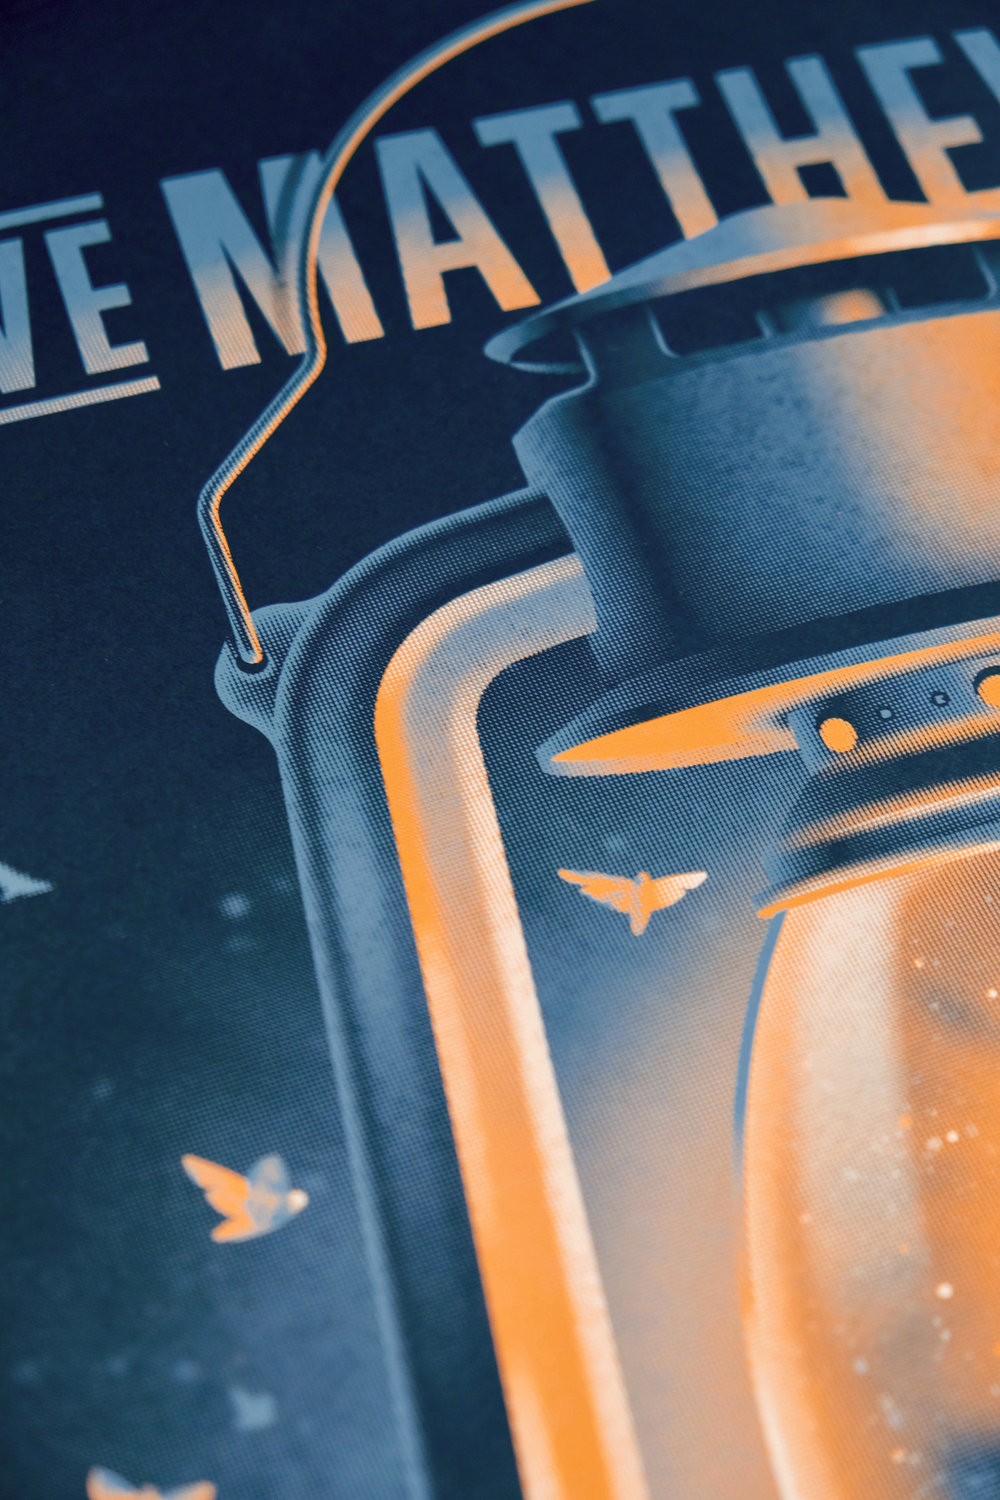 Dave+Matthews+Band+poster+by+DKNG_3.jpg